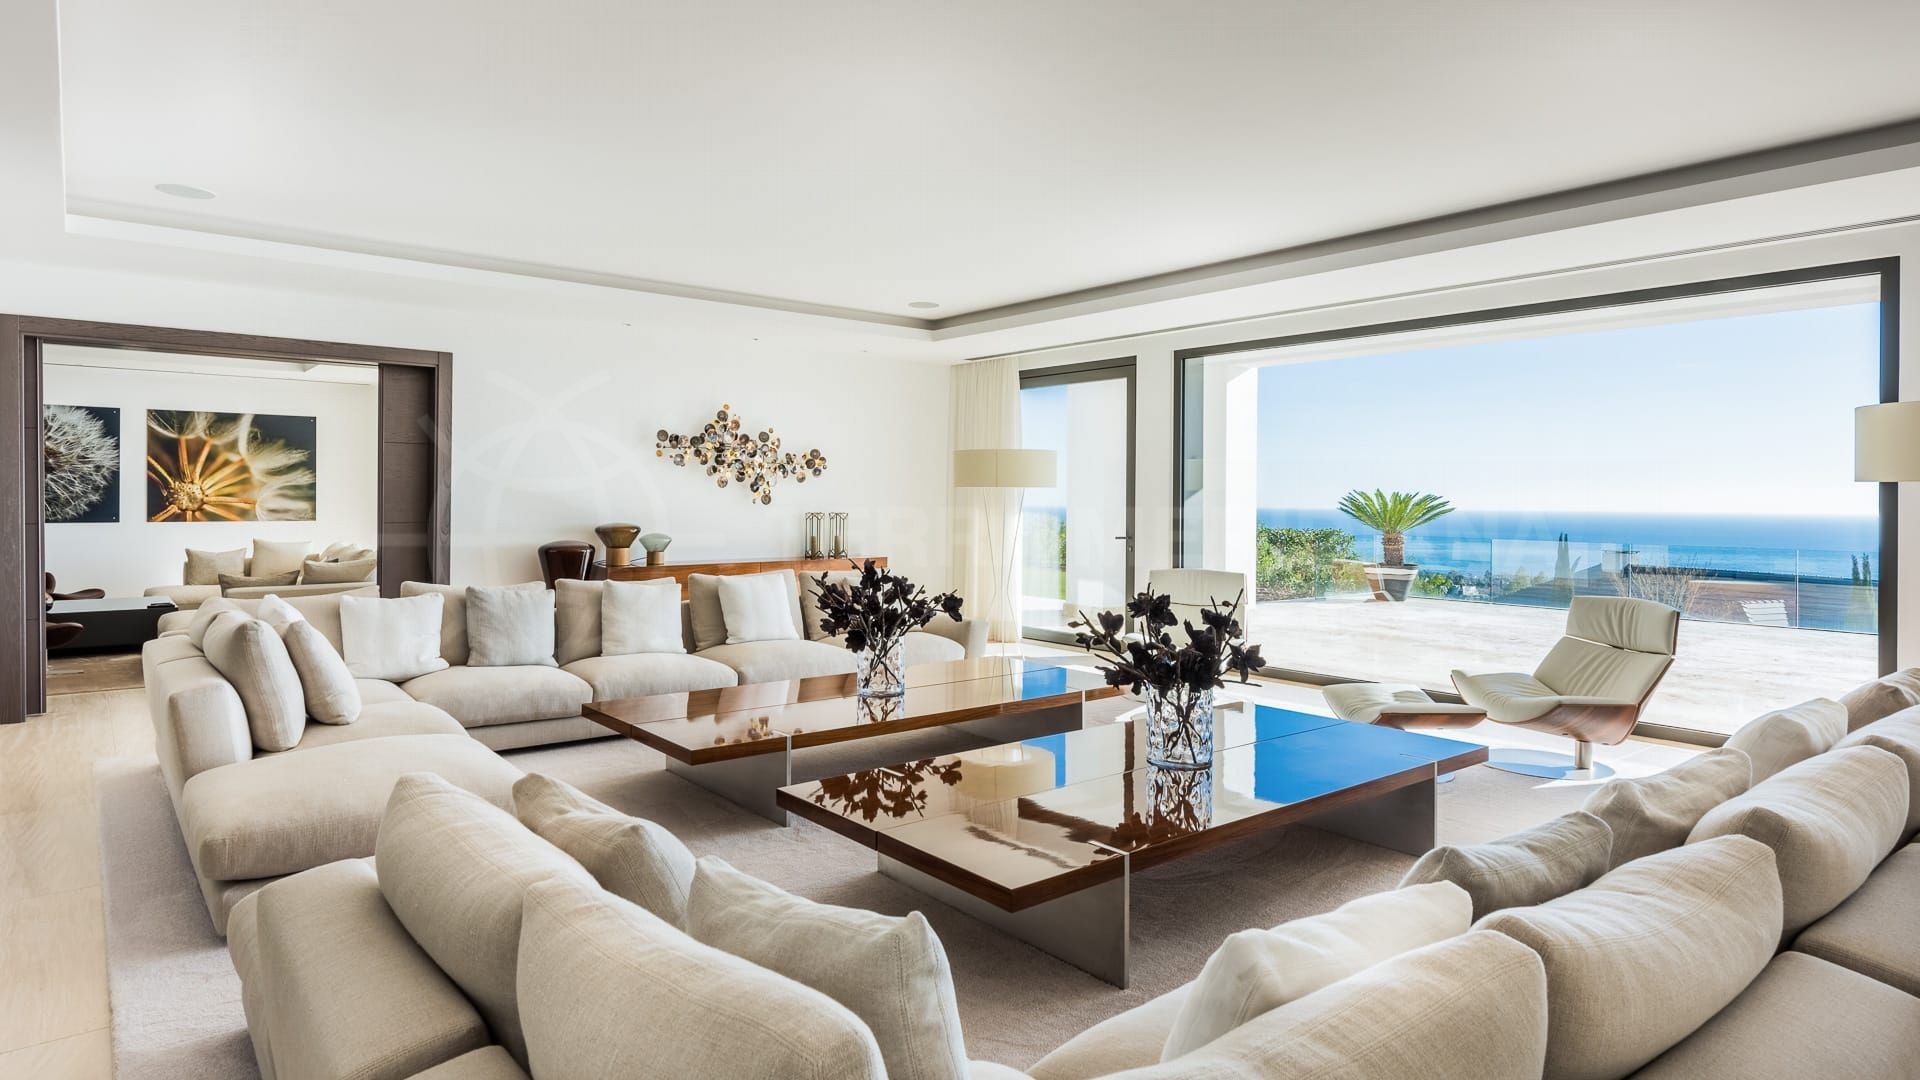 Marbella, a resilient property market